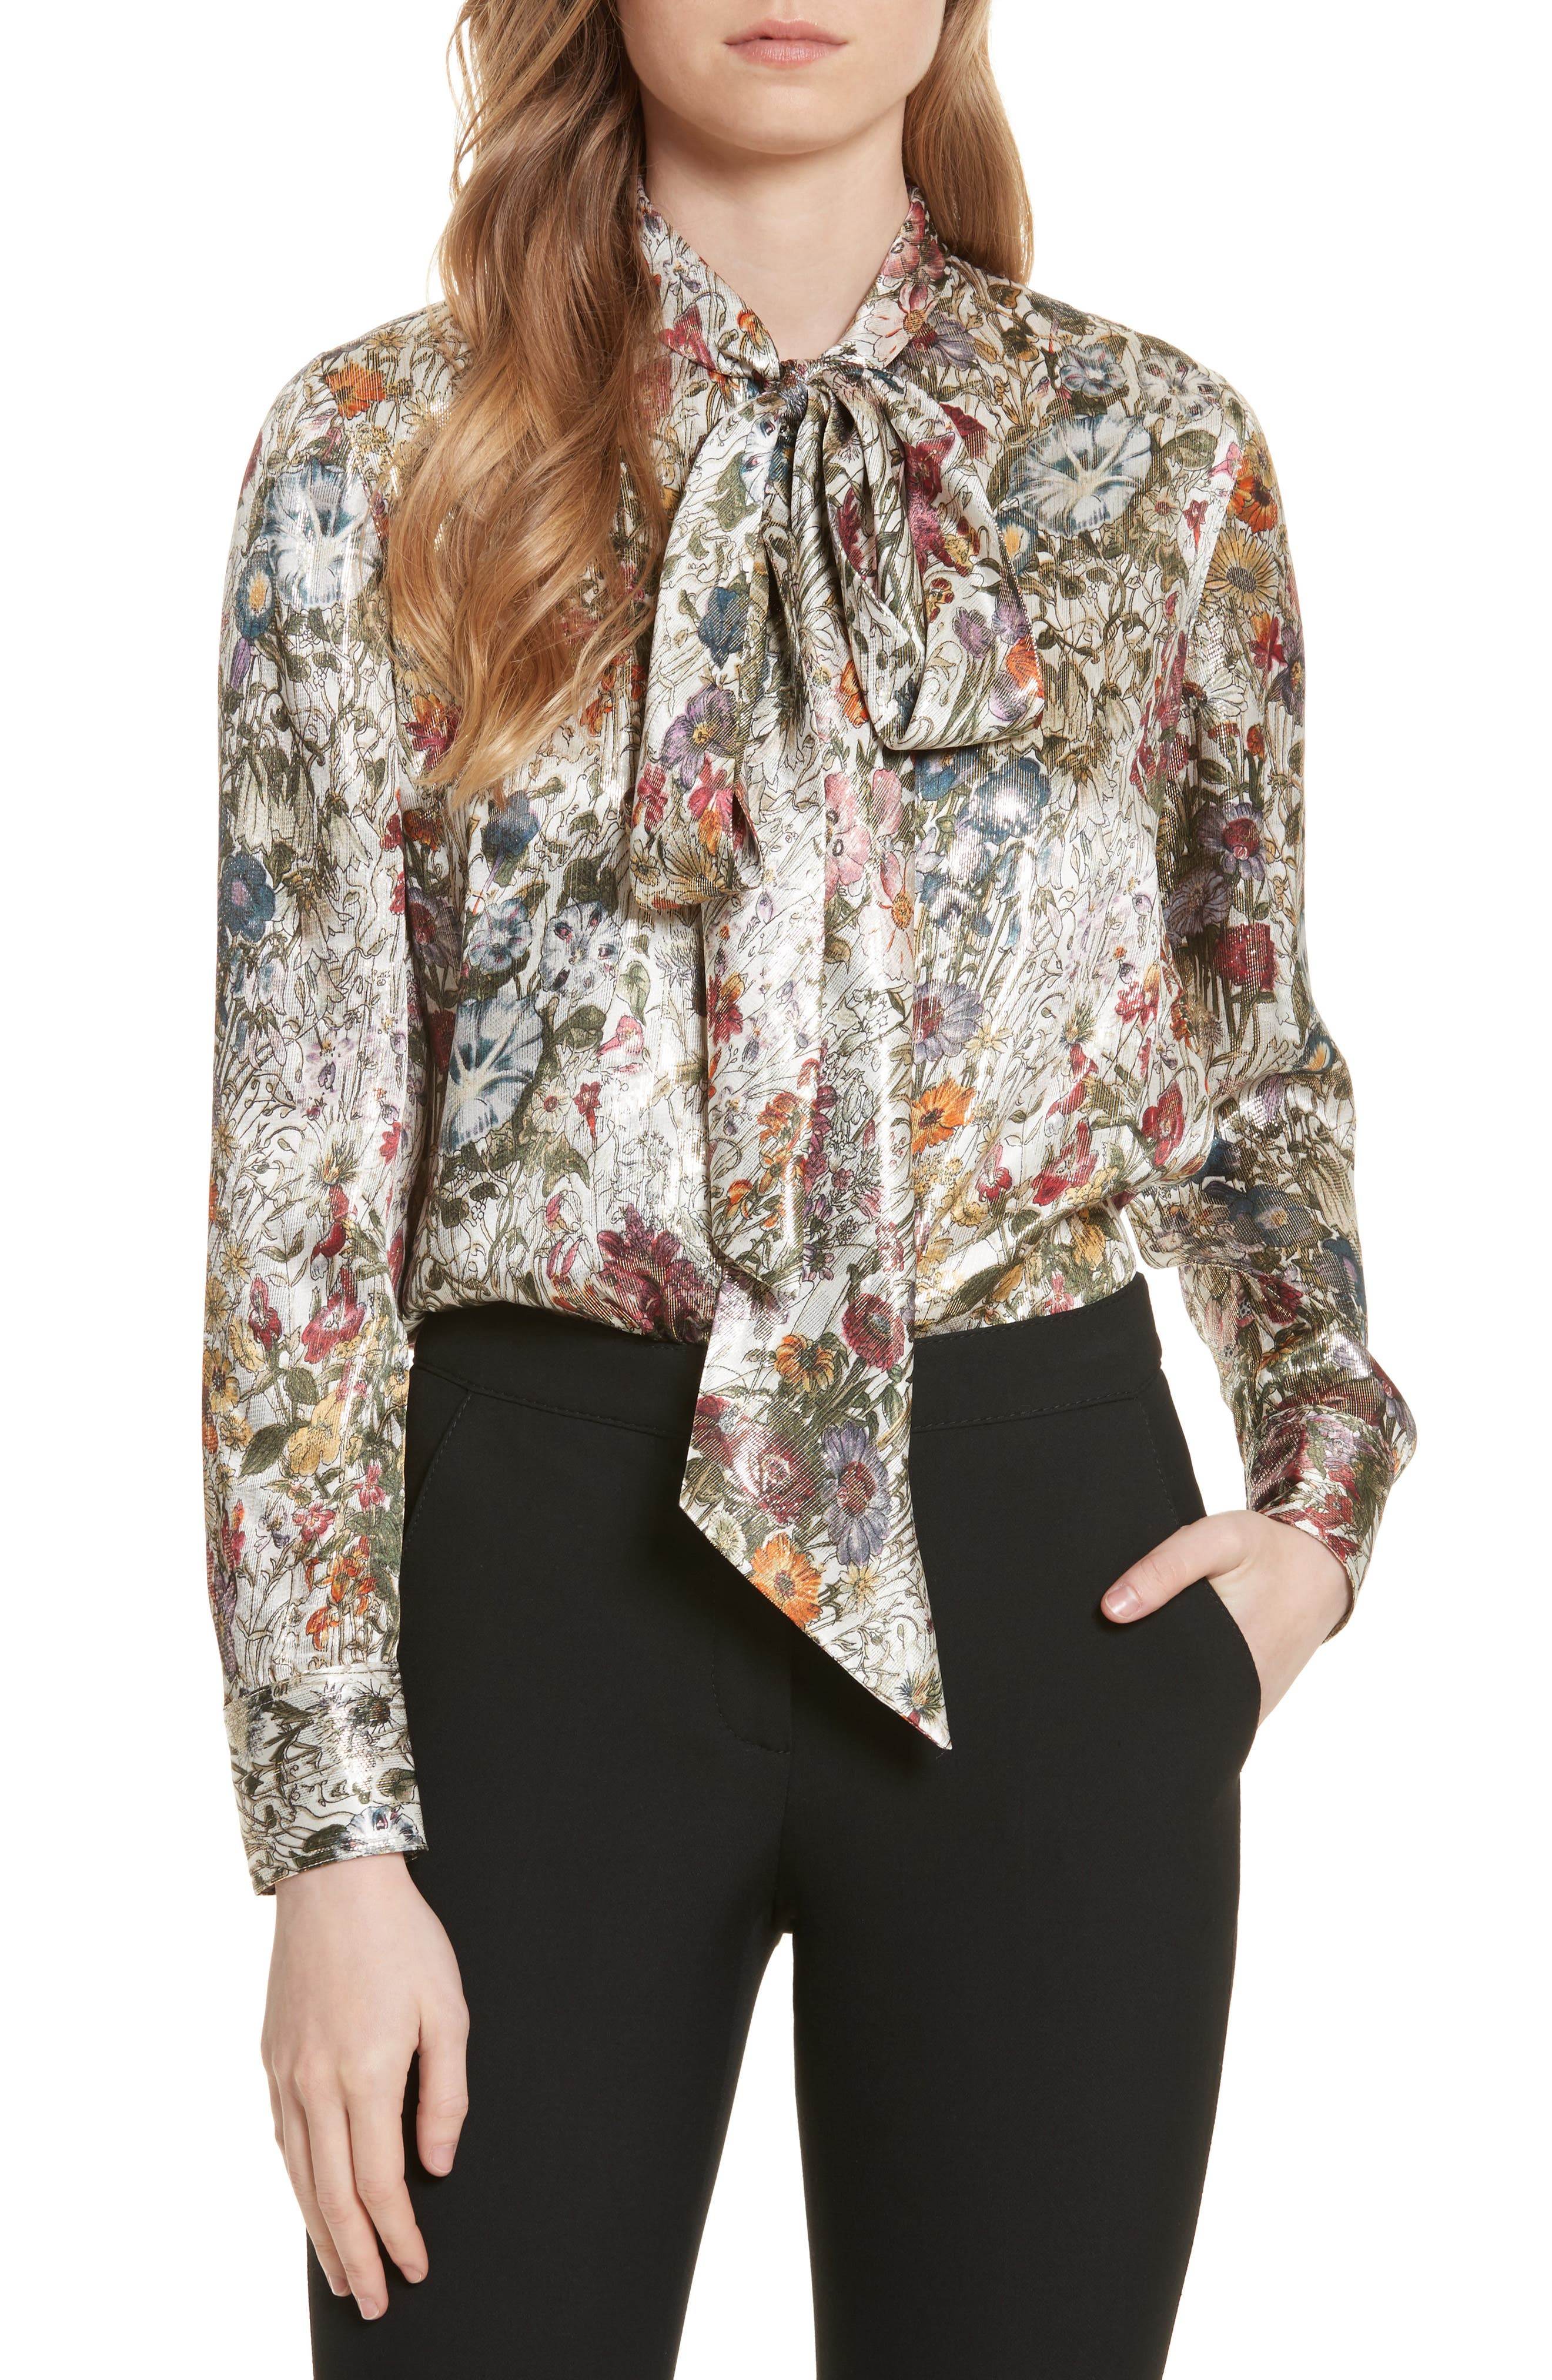 Main Image - Tory Burch Tie Neck Metallic Floral Blouse